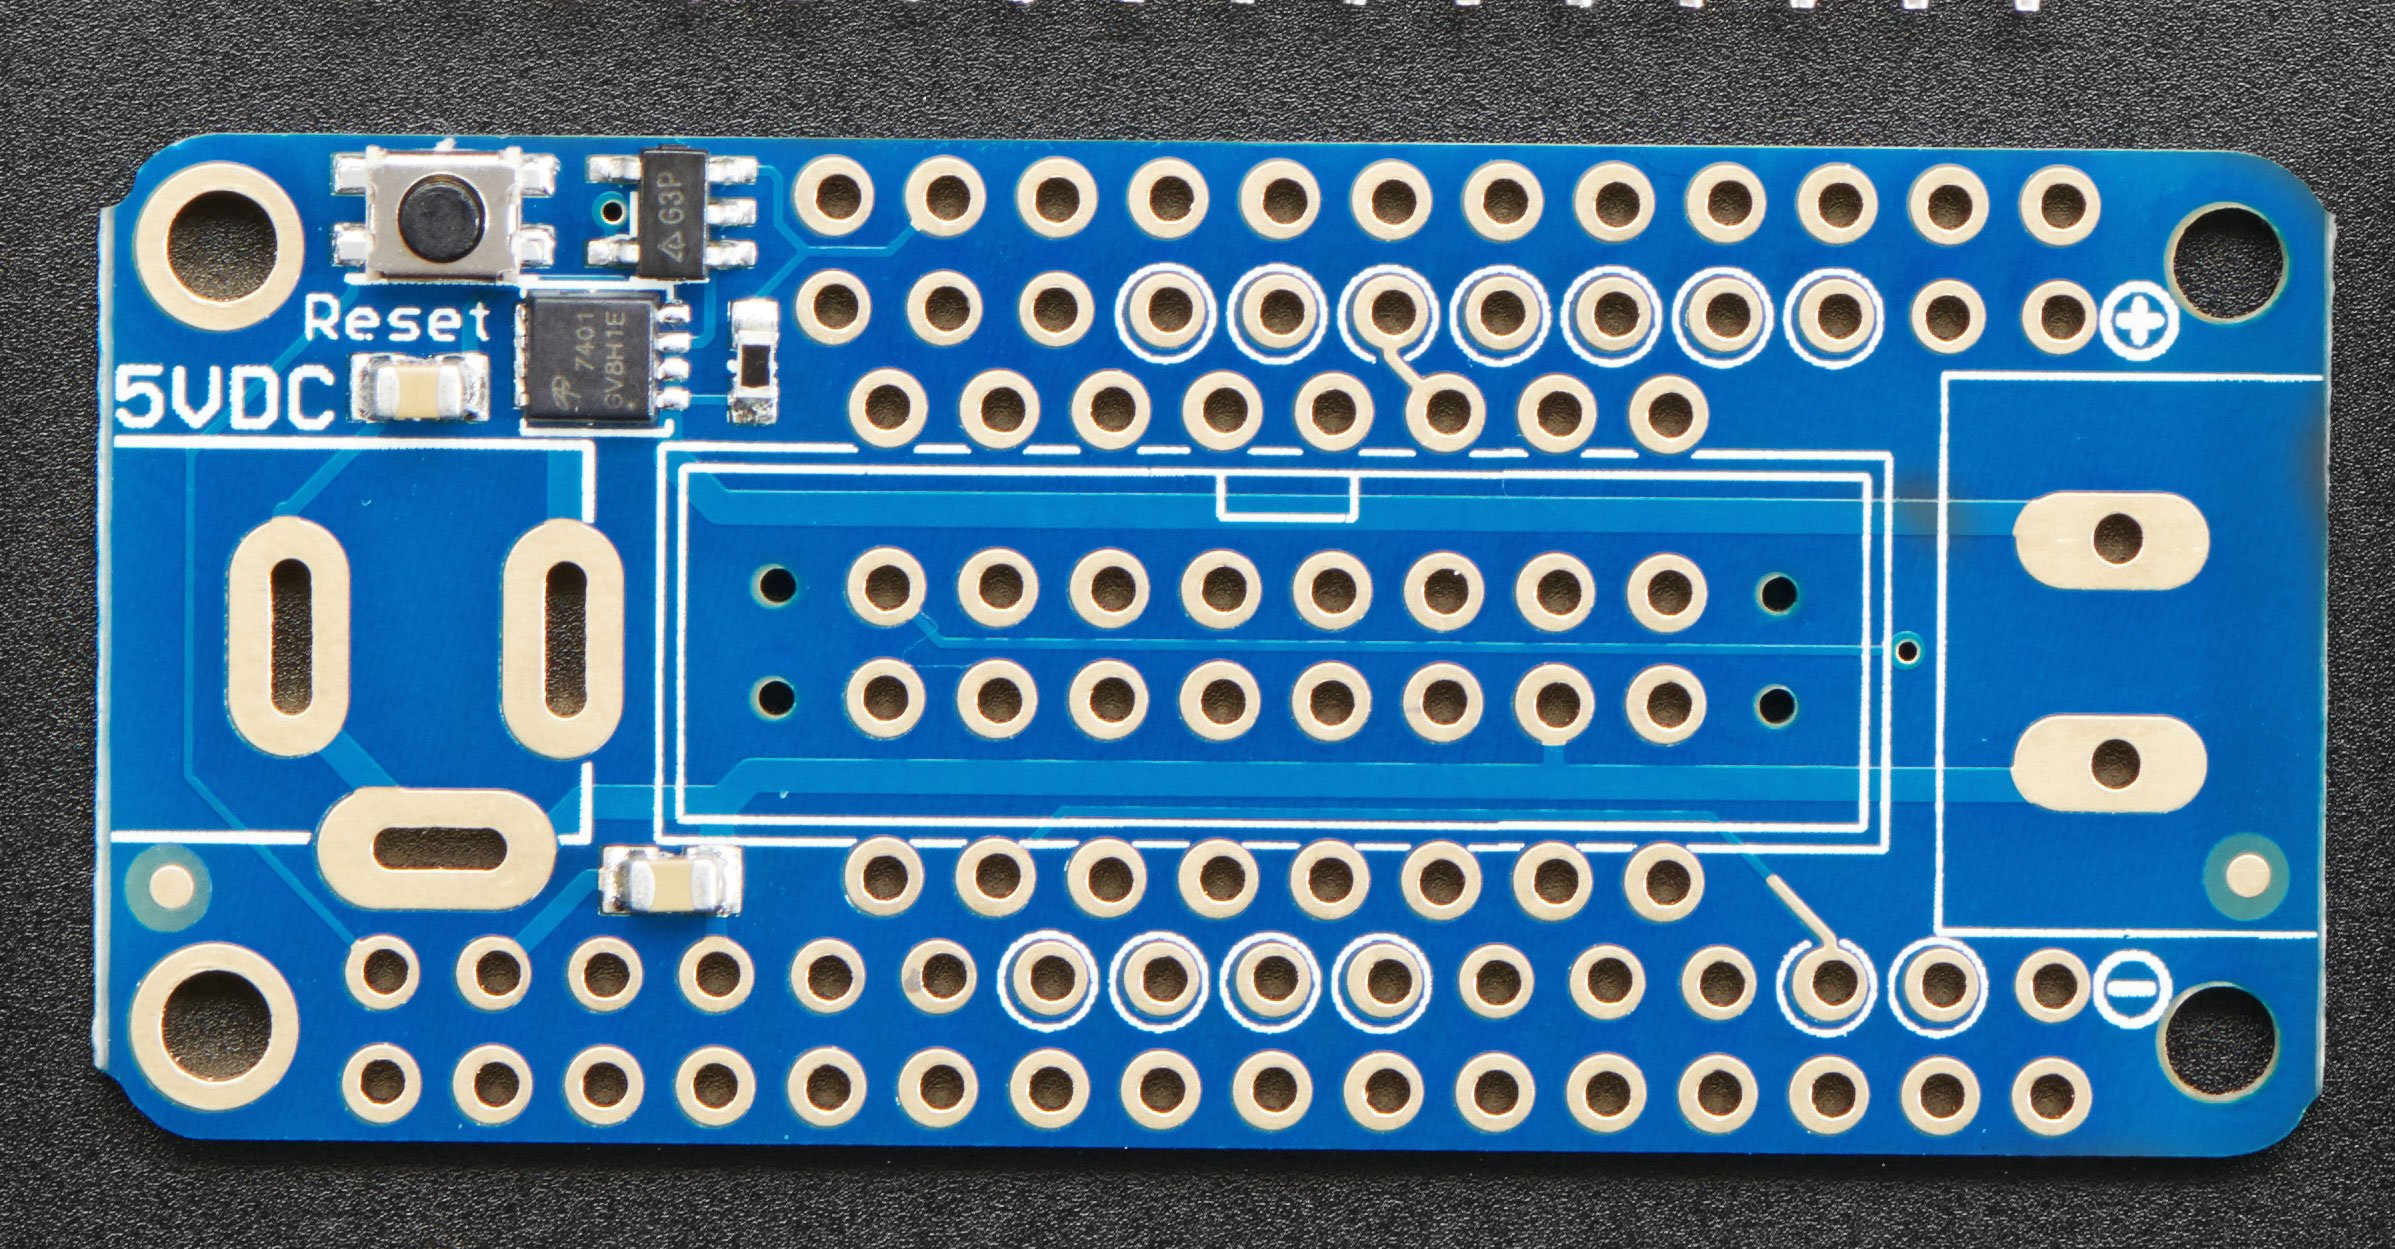 adafruit_products_pinout_top.jpg